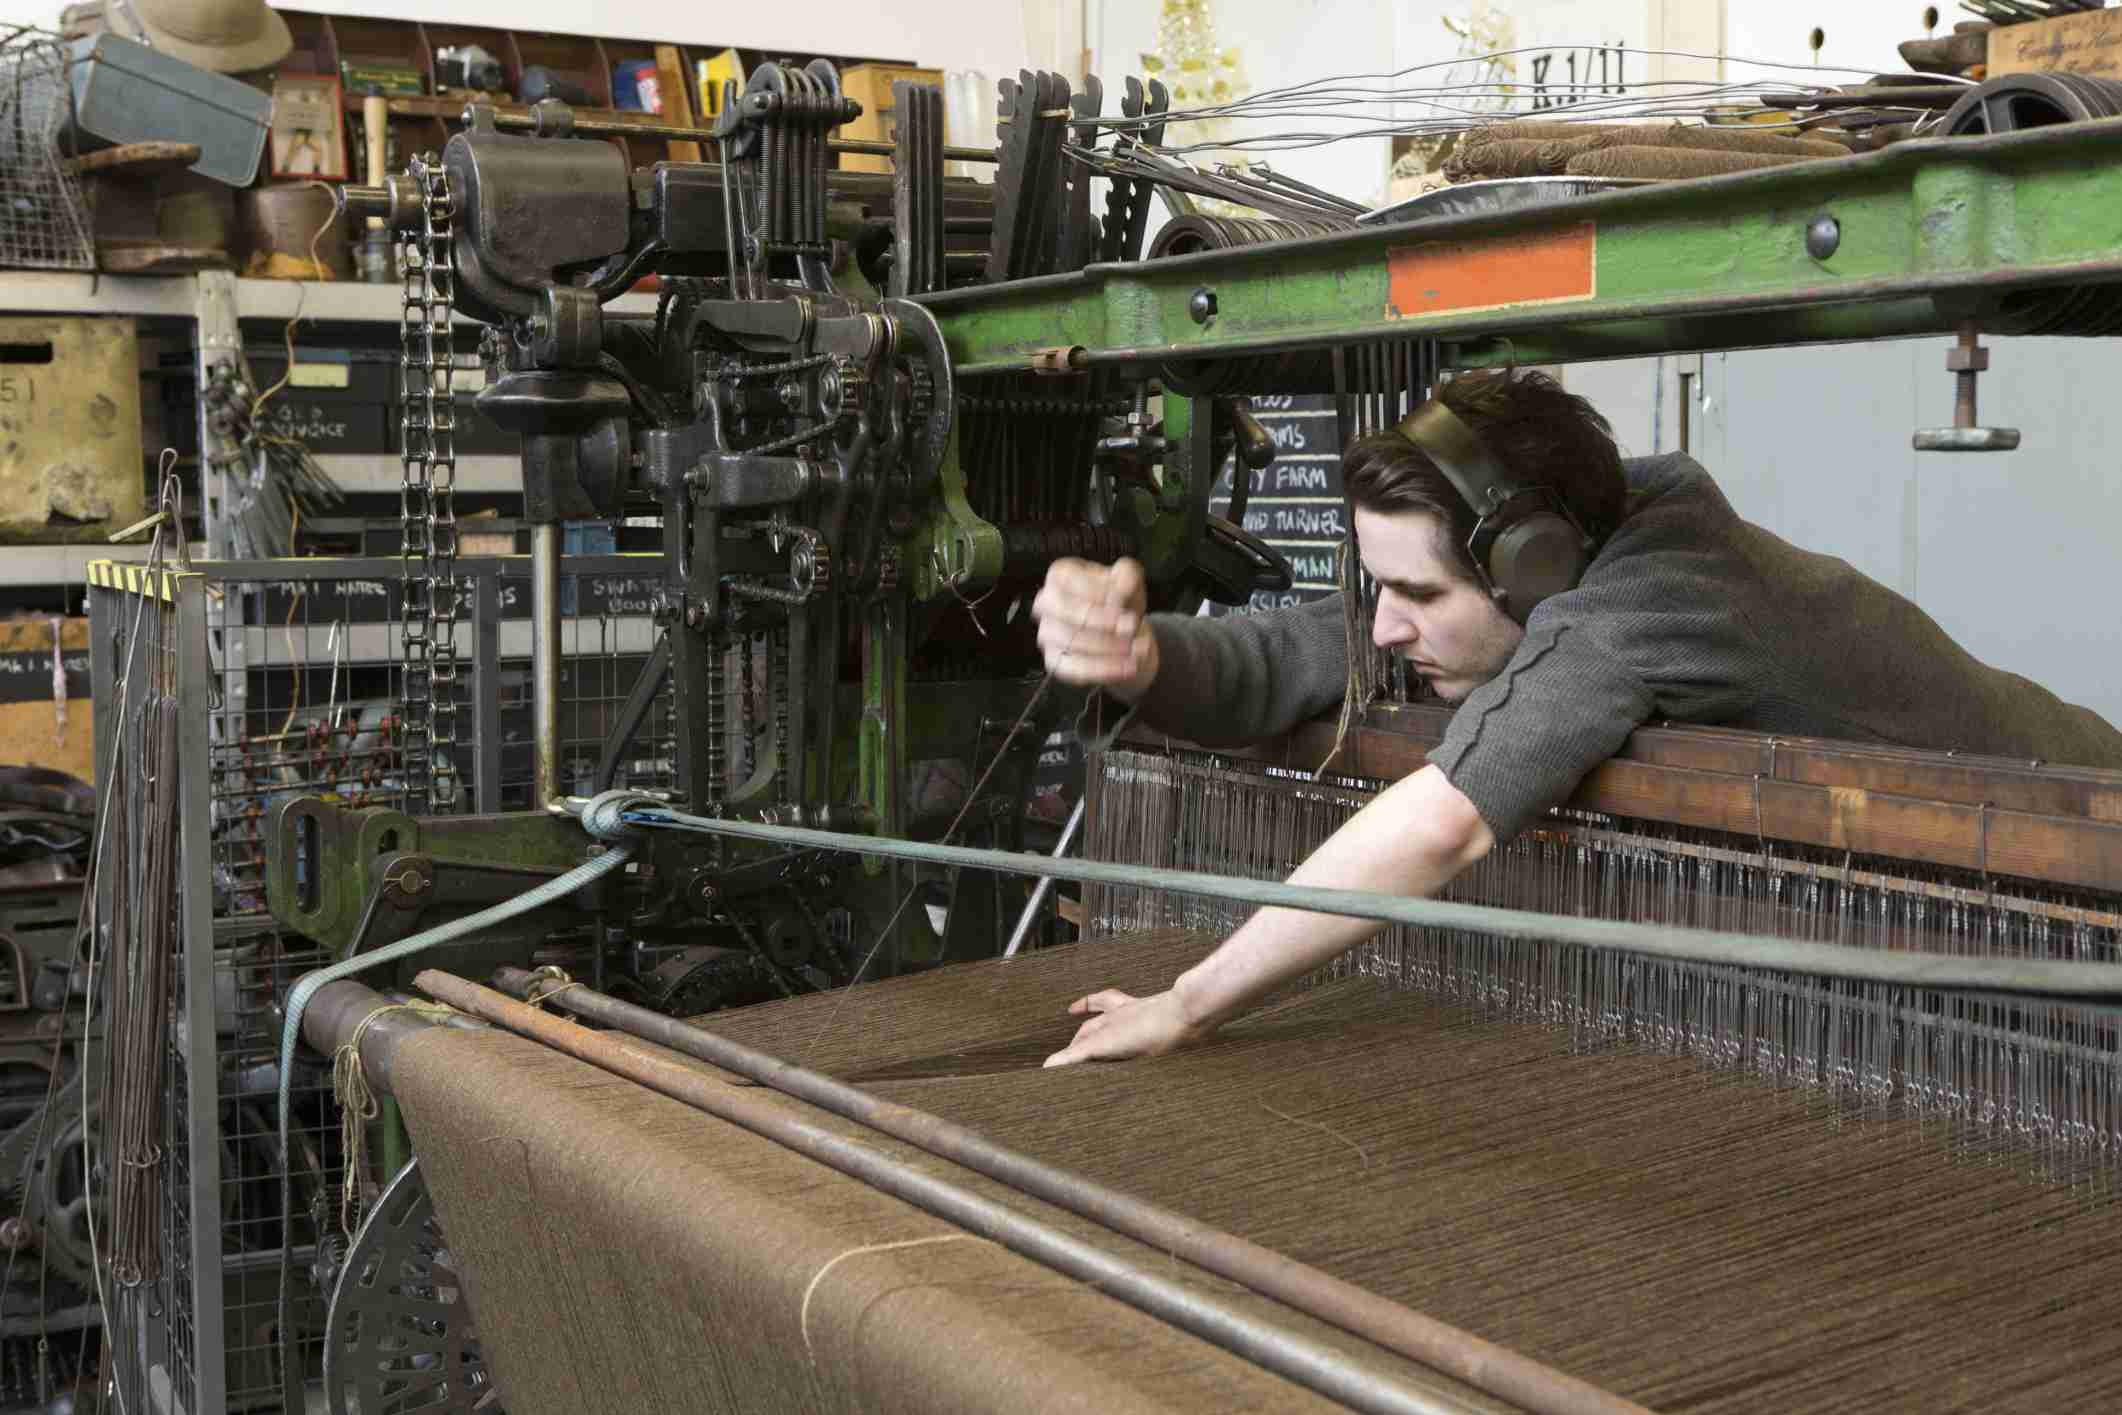 Man working in Textile Manufacturing at a large loom